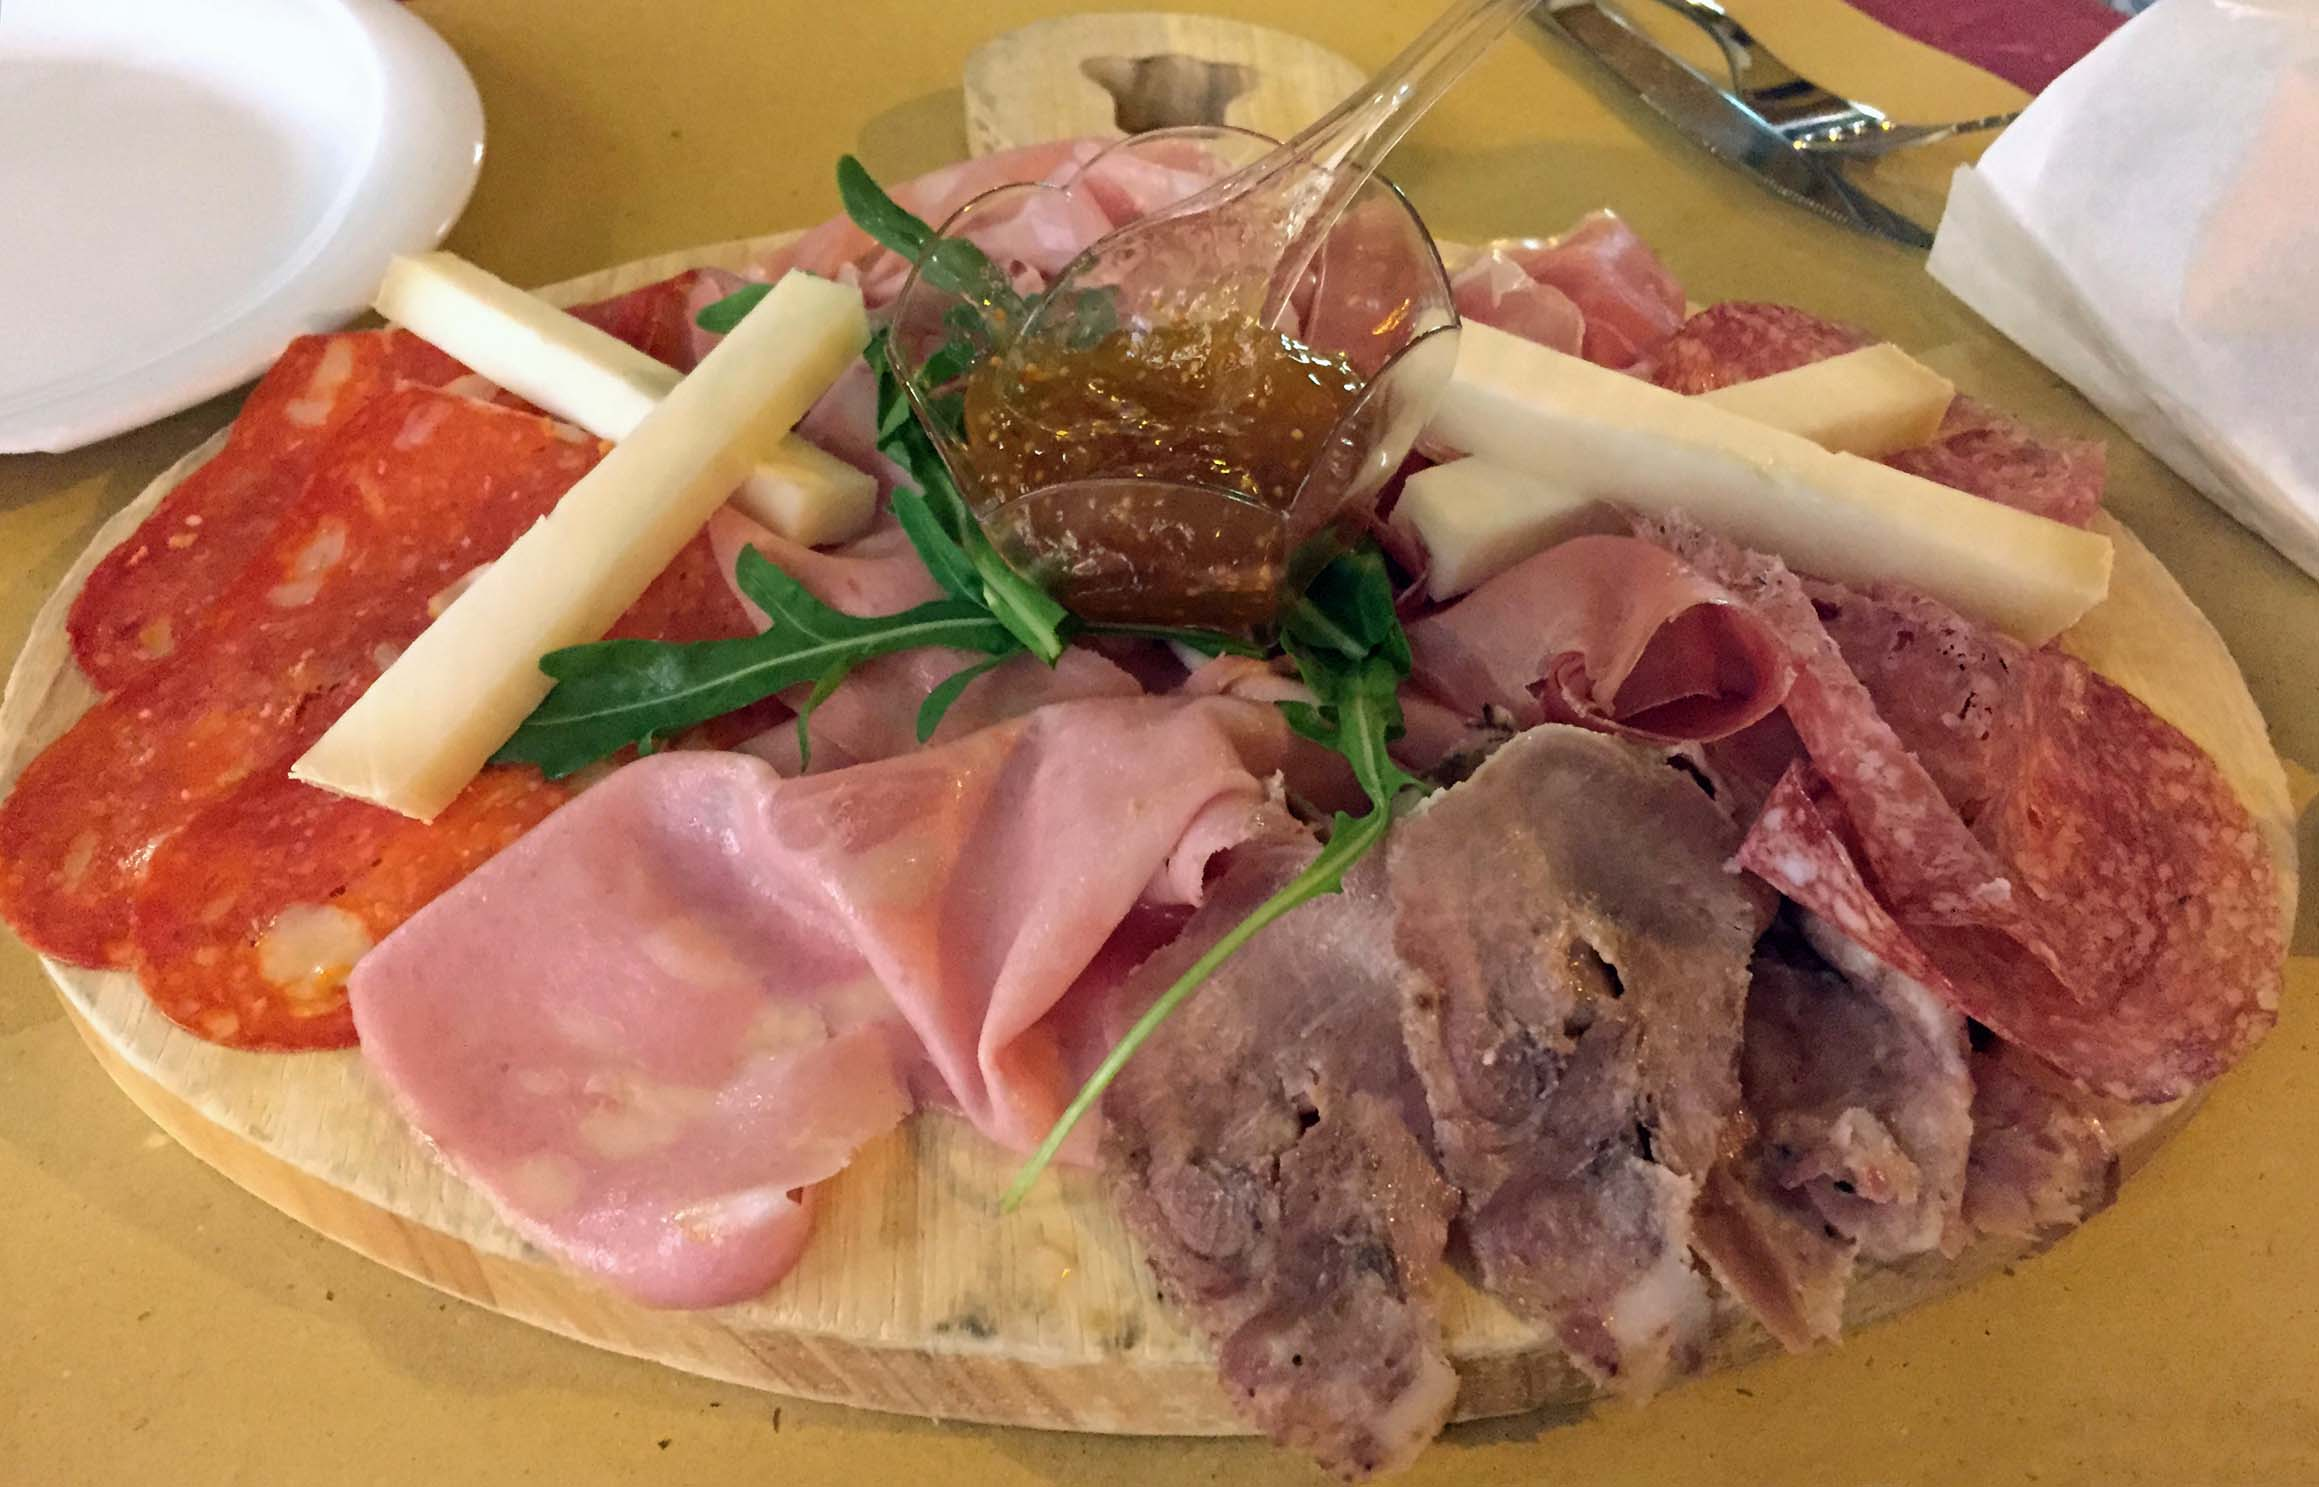 Cold meats and cheese on a board